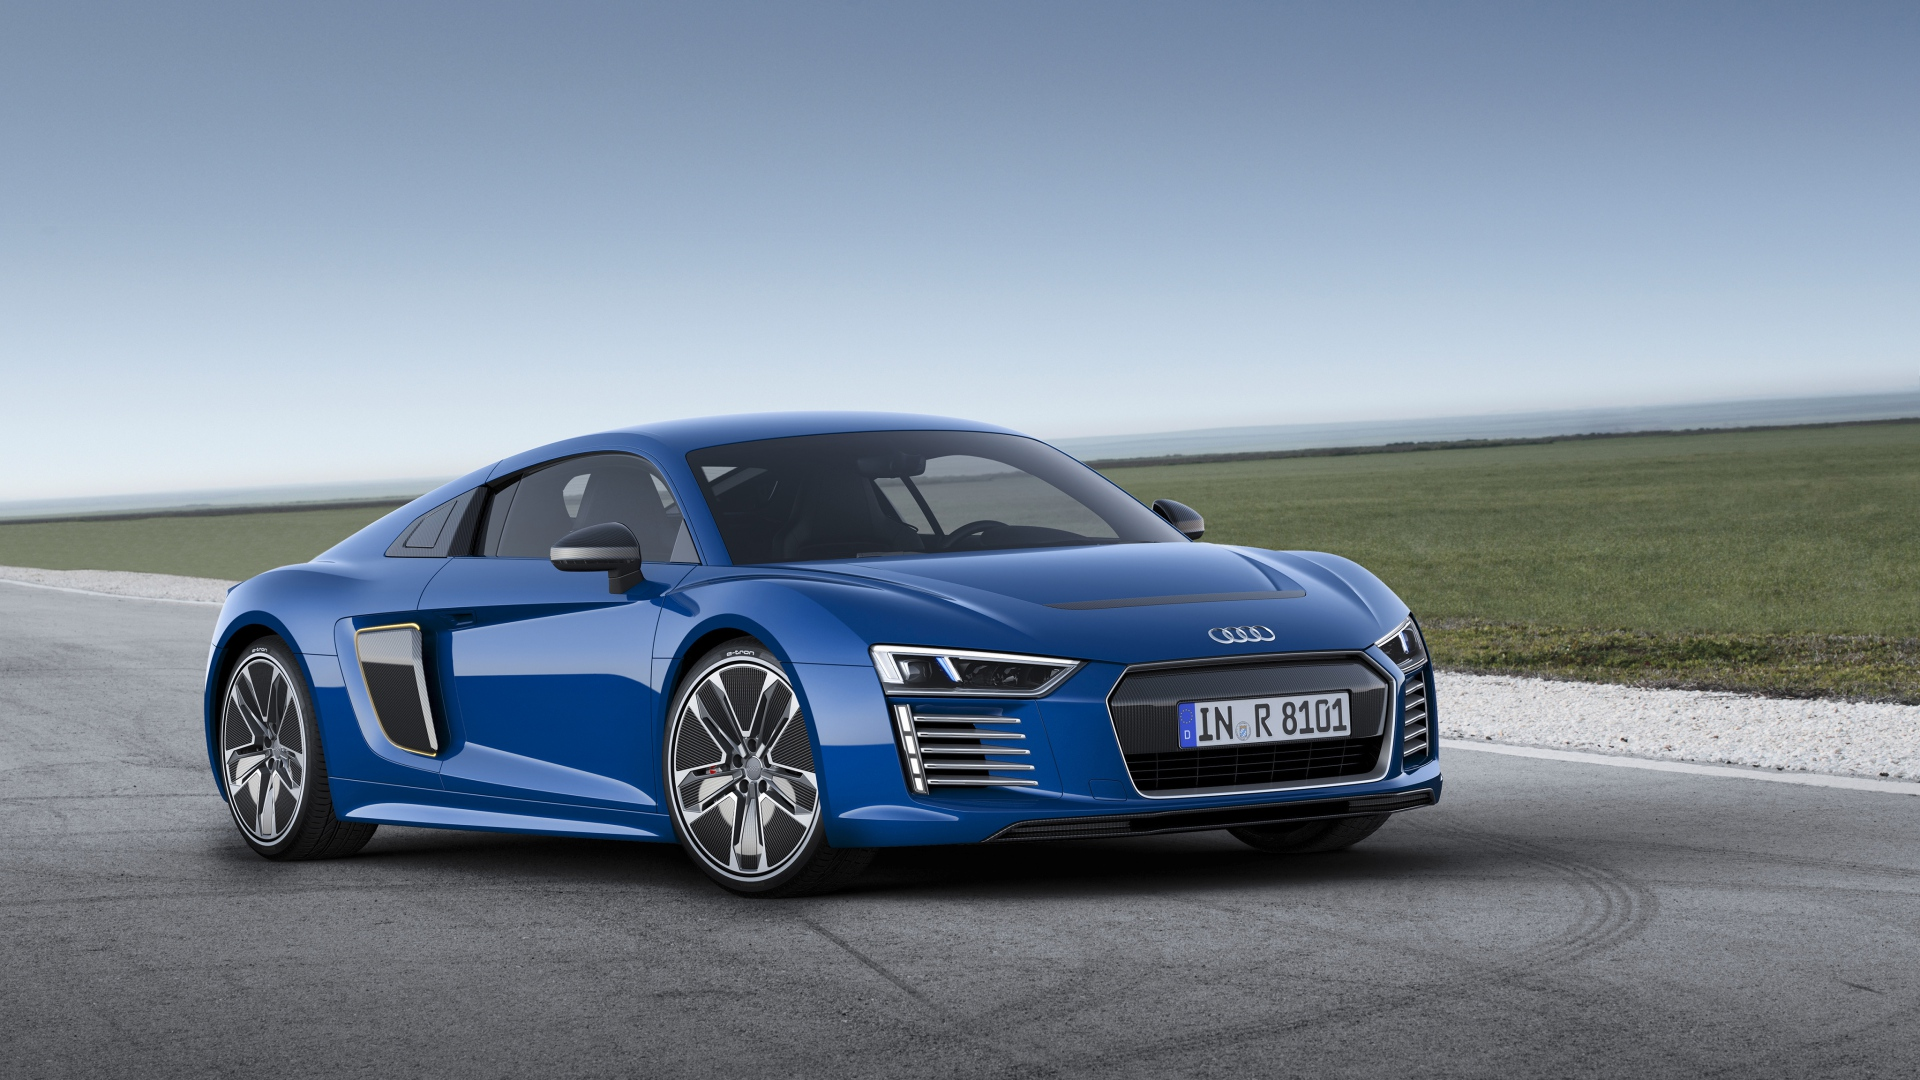 audi r8 e tron blue side view 1920x1080